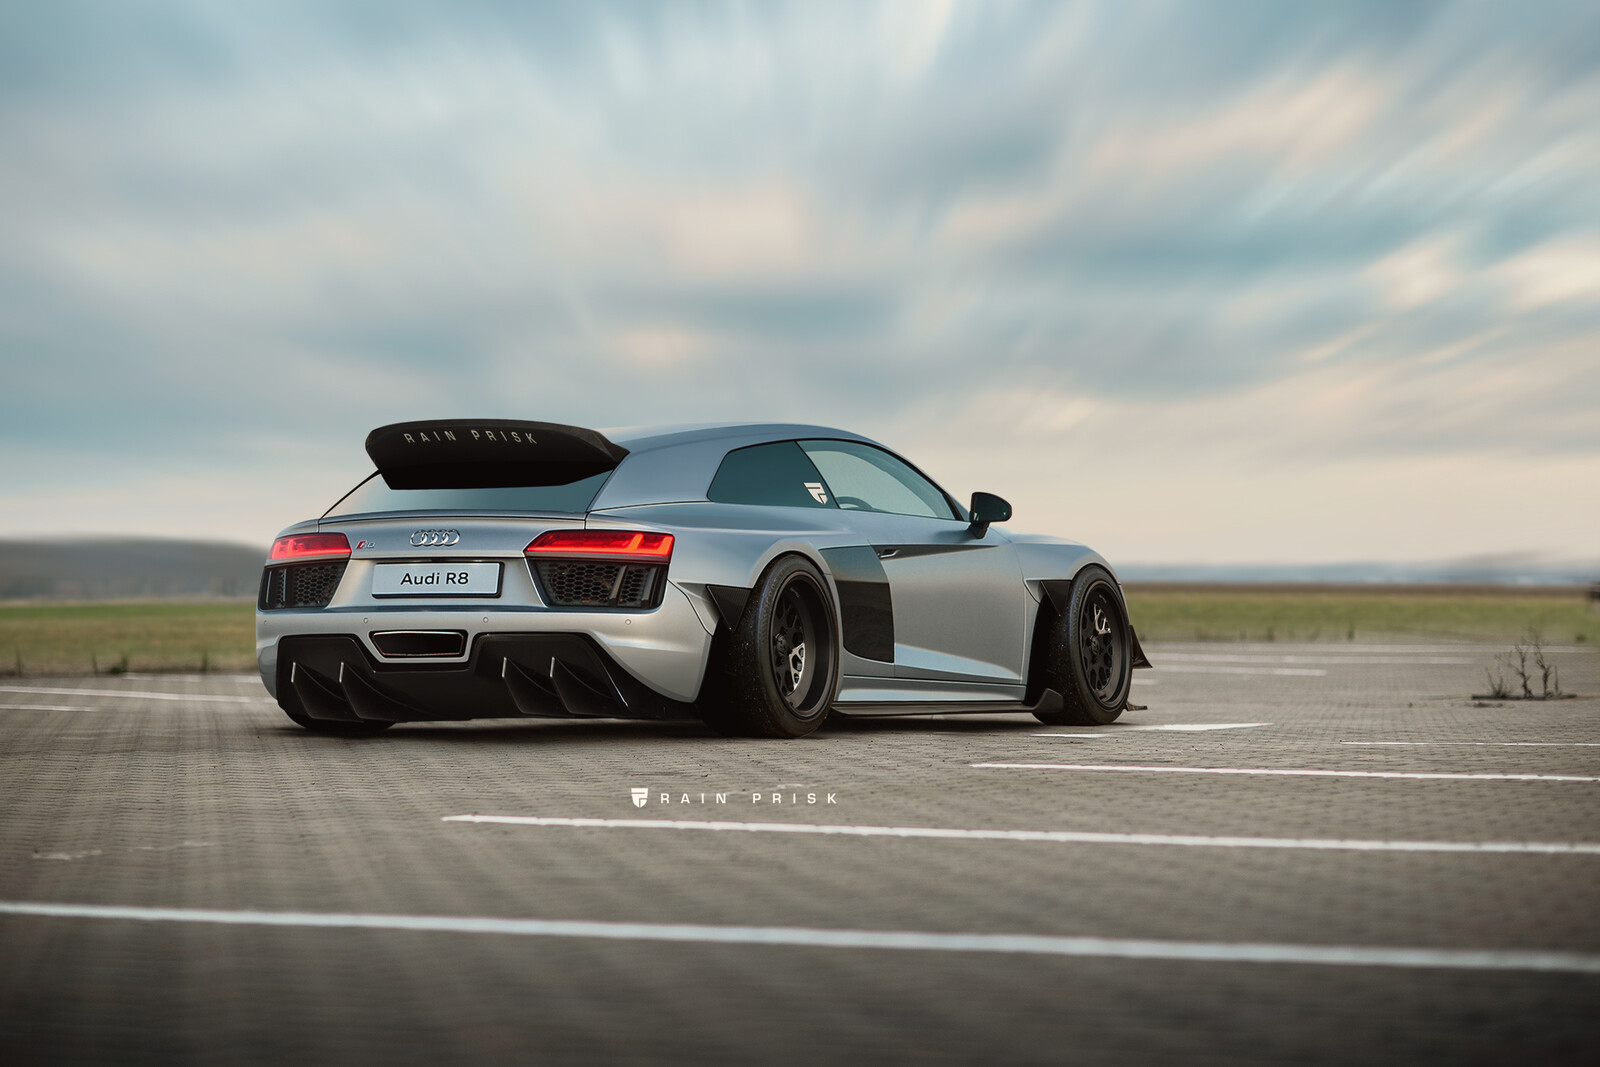 Fat R8 Shooting brake